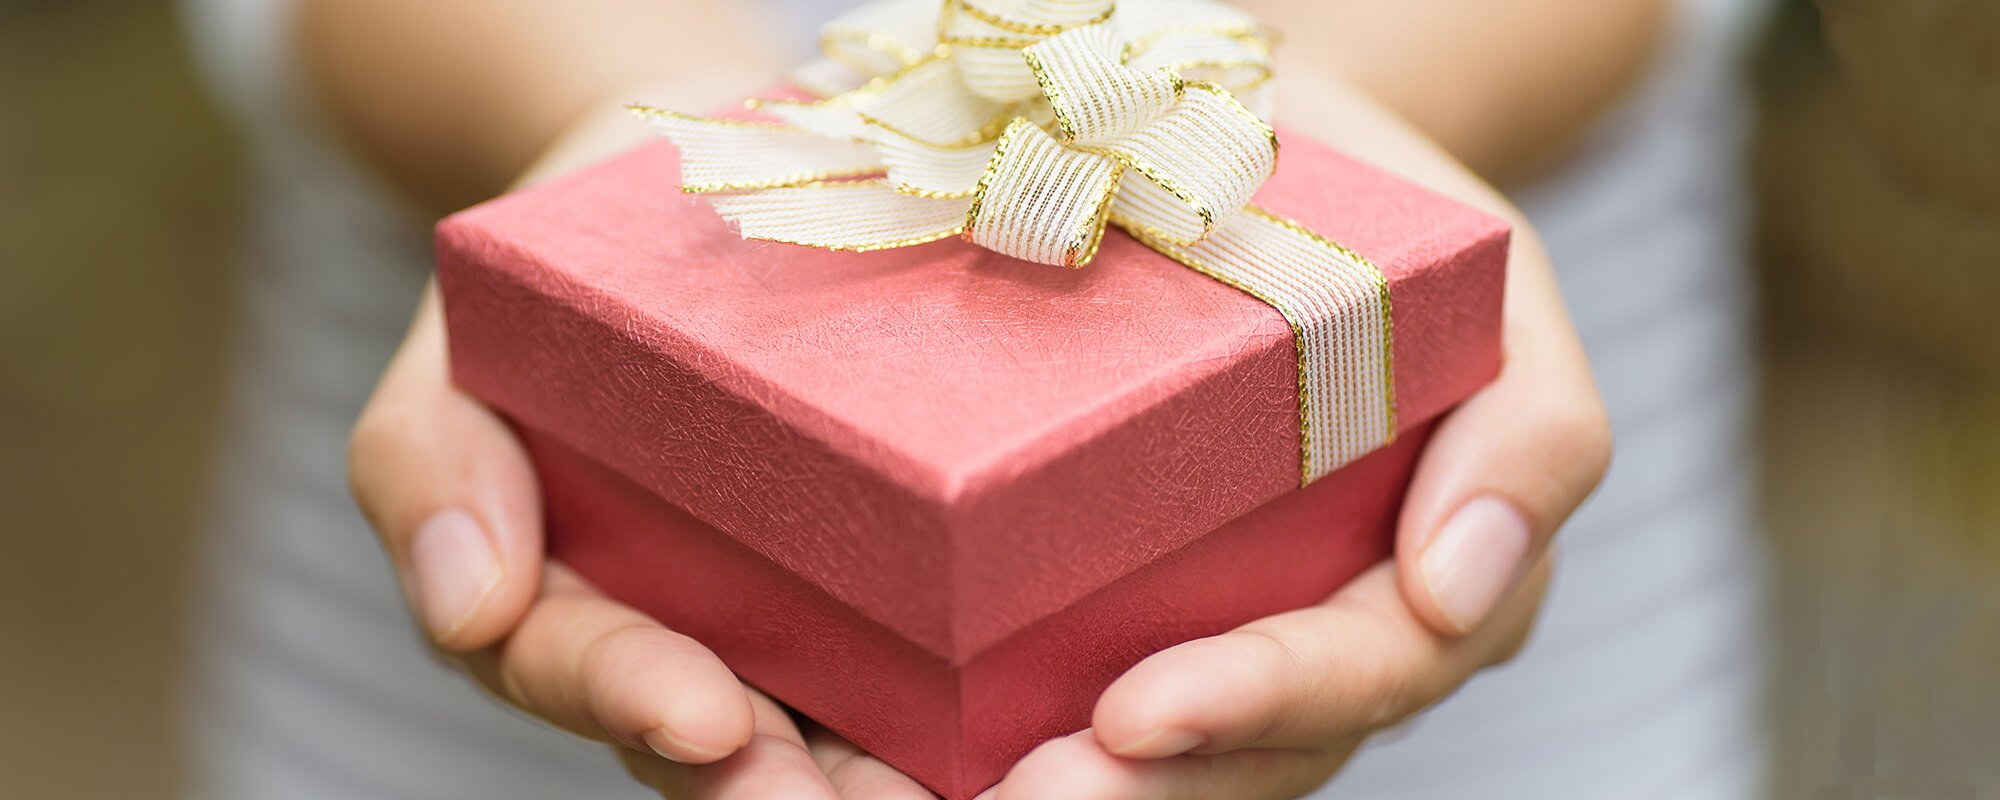 Image of a hand holding a red giftbox